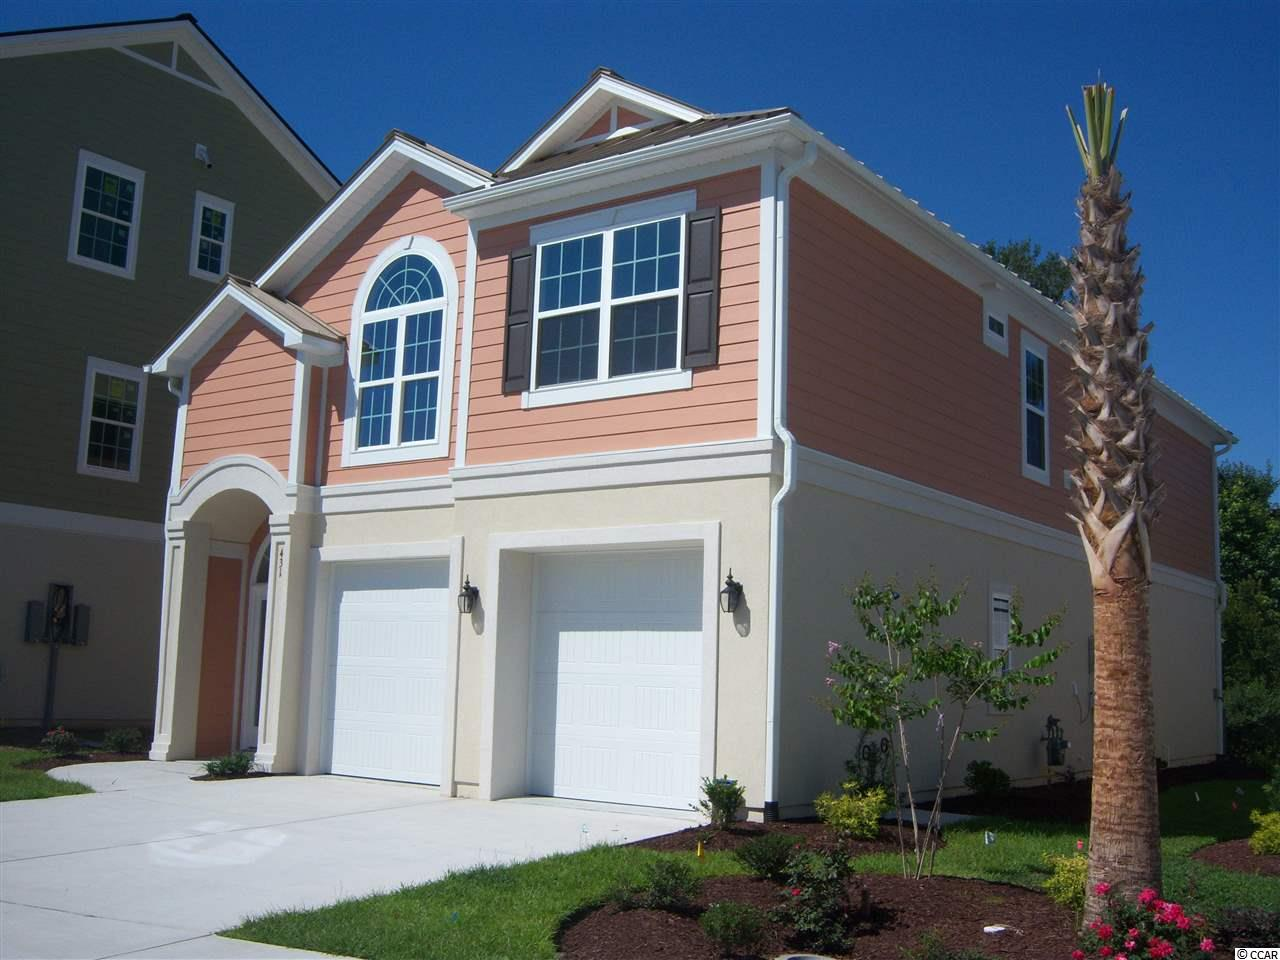 431 7th Avenue South, North Myrtle Beach, SC 29582